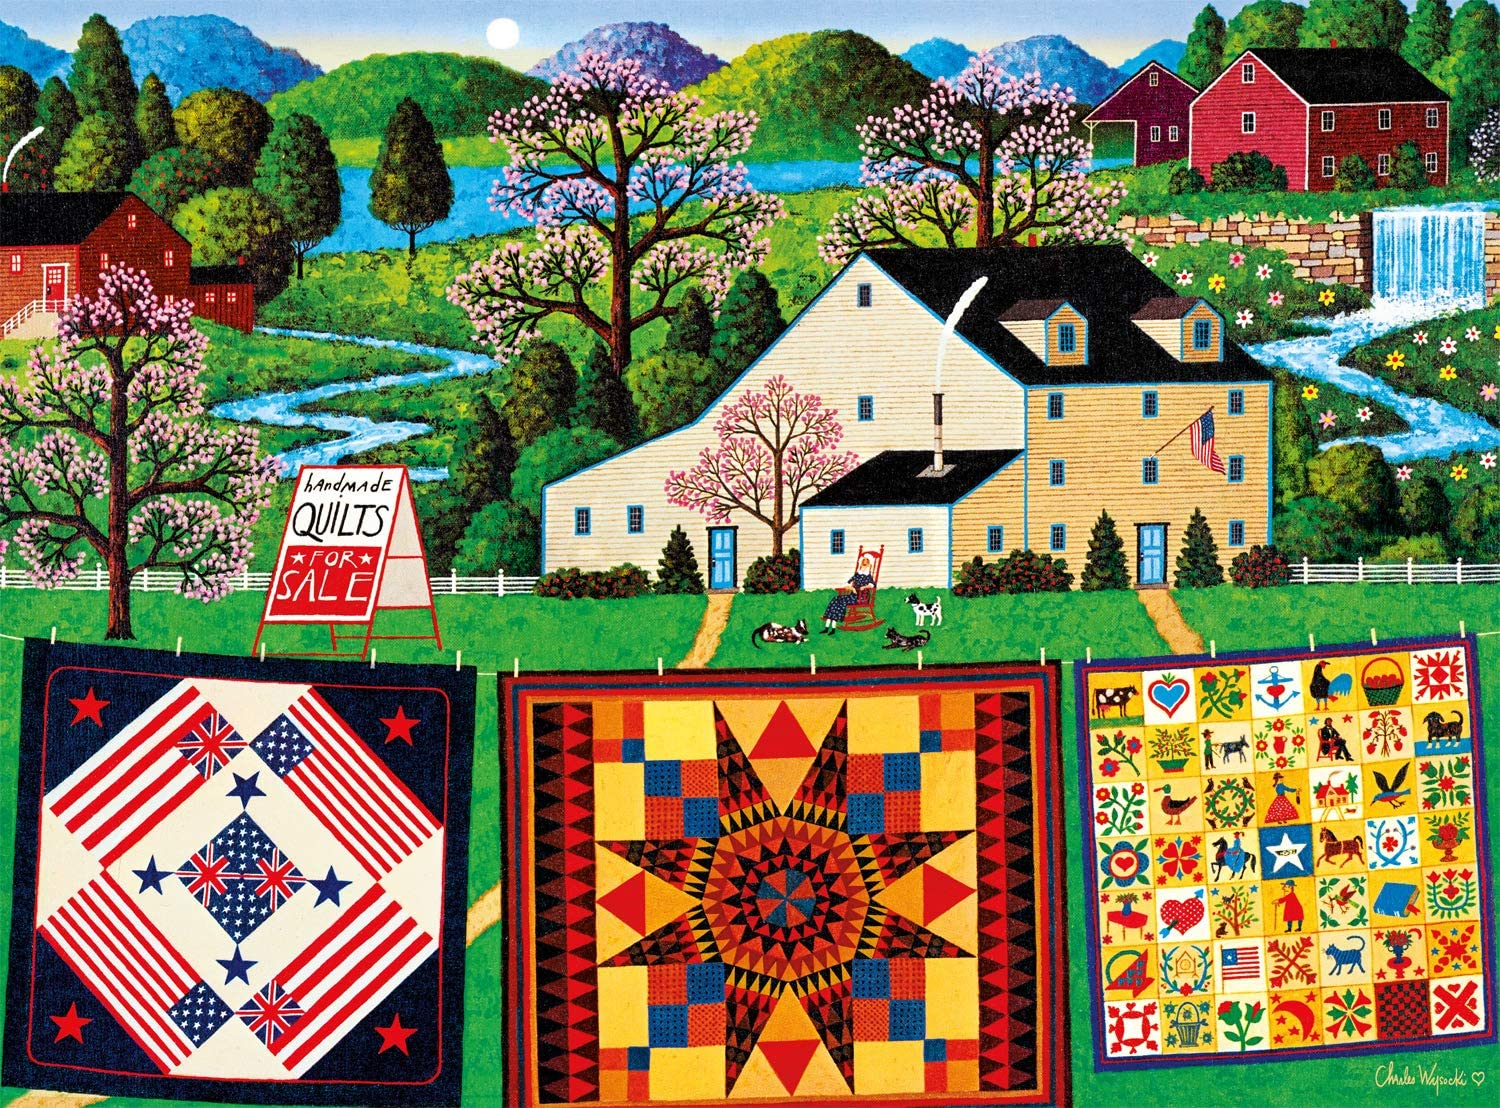 Buffalo Games - Charles Wysocki - The Quiltmaker Lady - 1000 Piece Jigsaw Puzzle